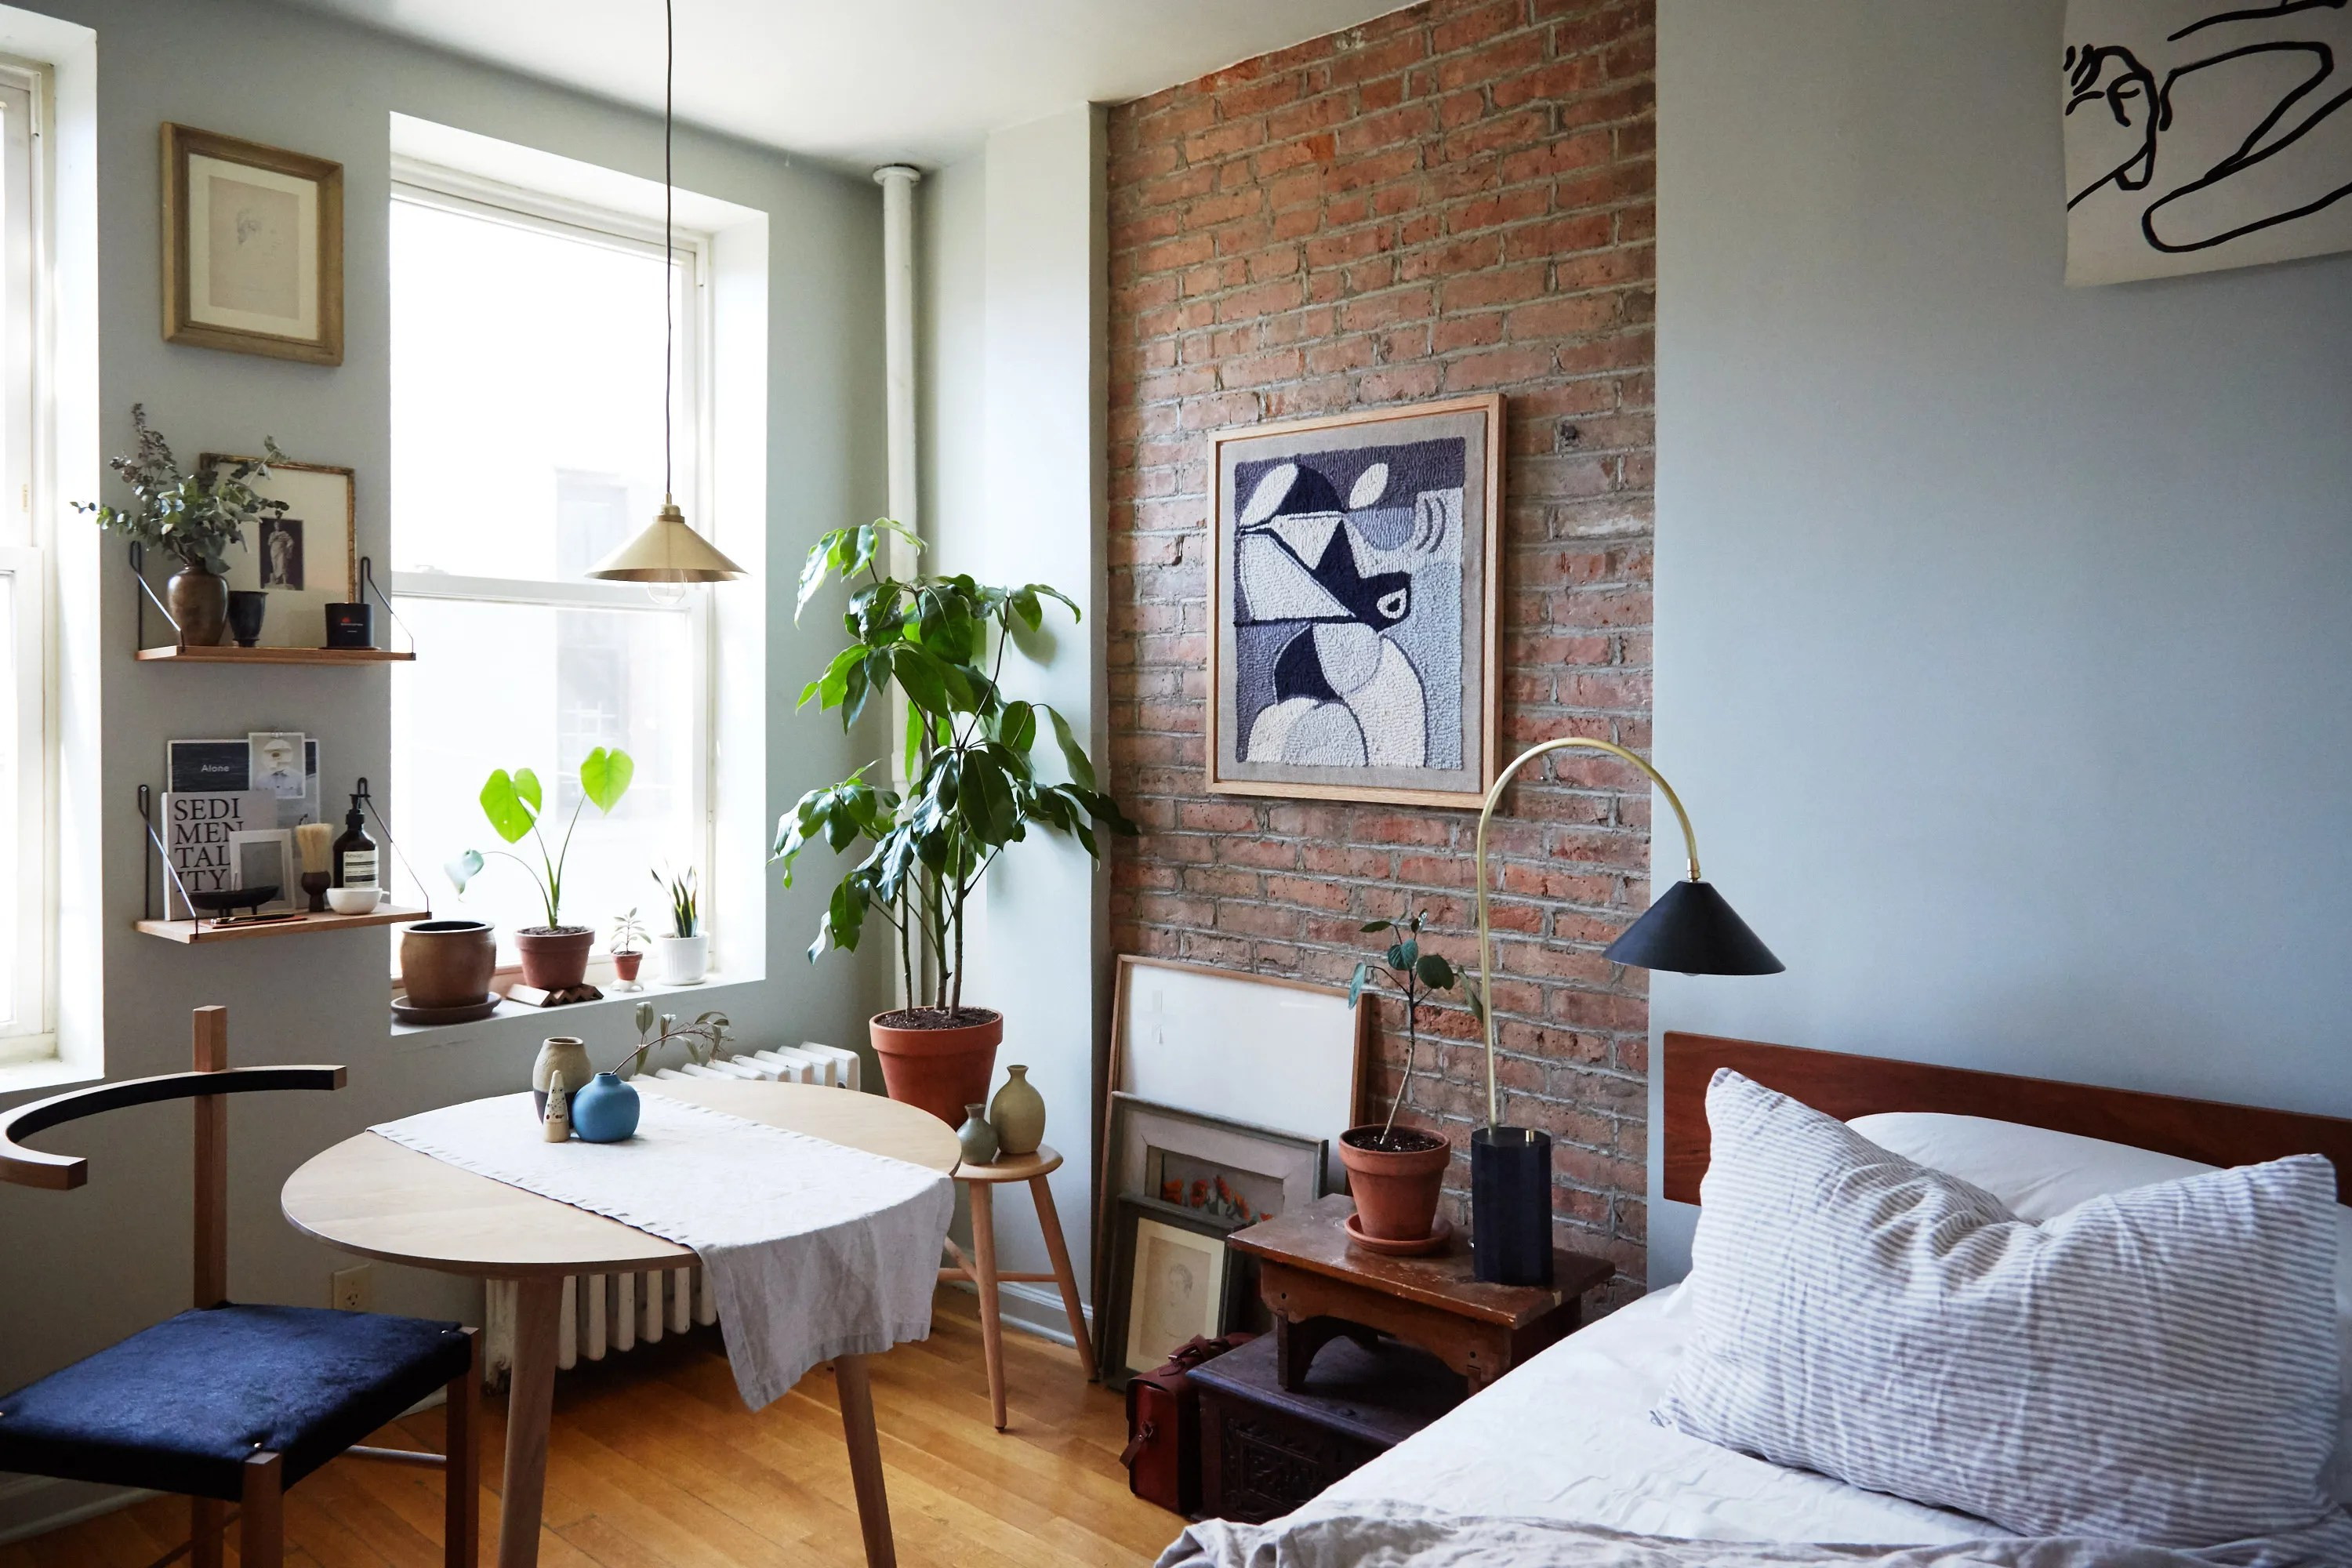 What I Learned About Decorating on a Budget From My First Apartment     What I Learned About Decorating on a Budget From My First Apartment    Architectural Digest